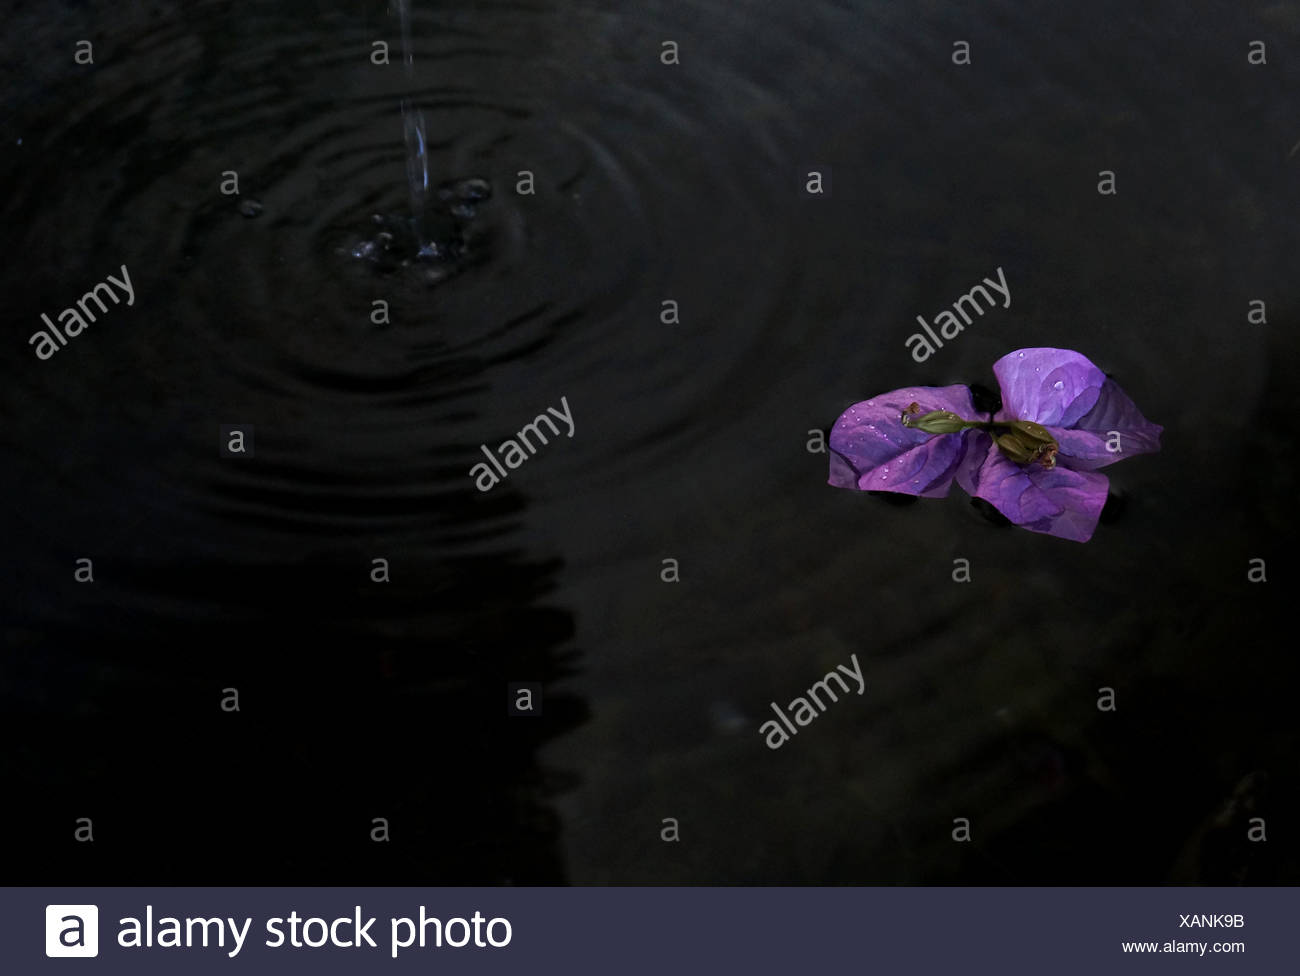 High Angle View Of Purple Flower In Pond - Stock Image